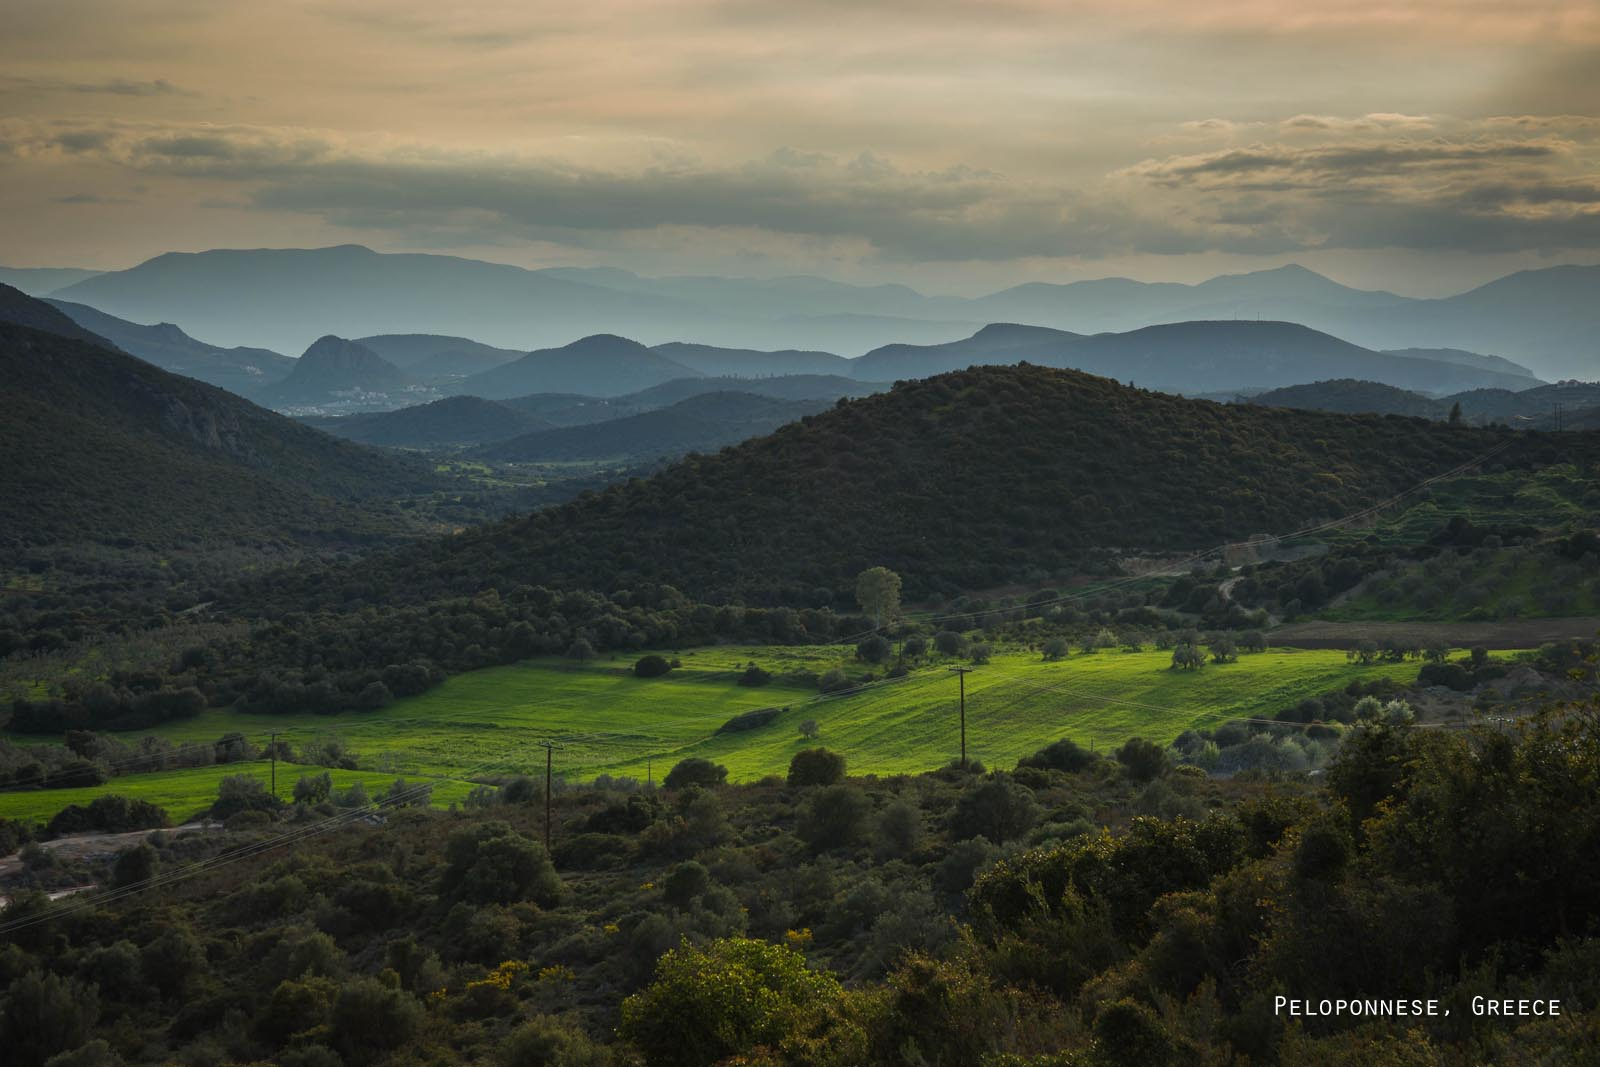 Enlarged image - Mountains Peloponnese